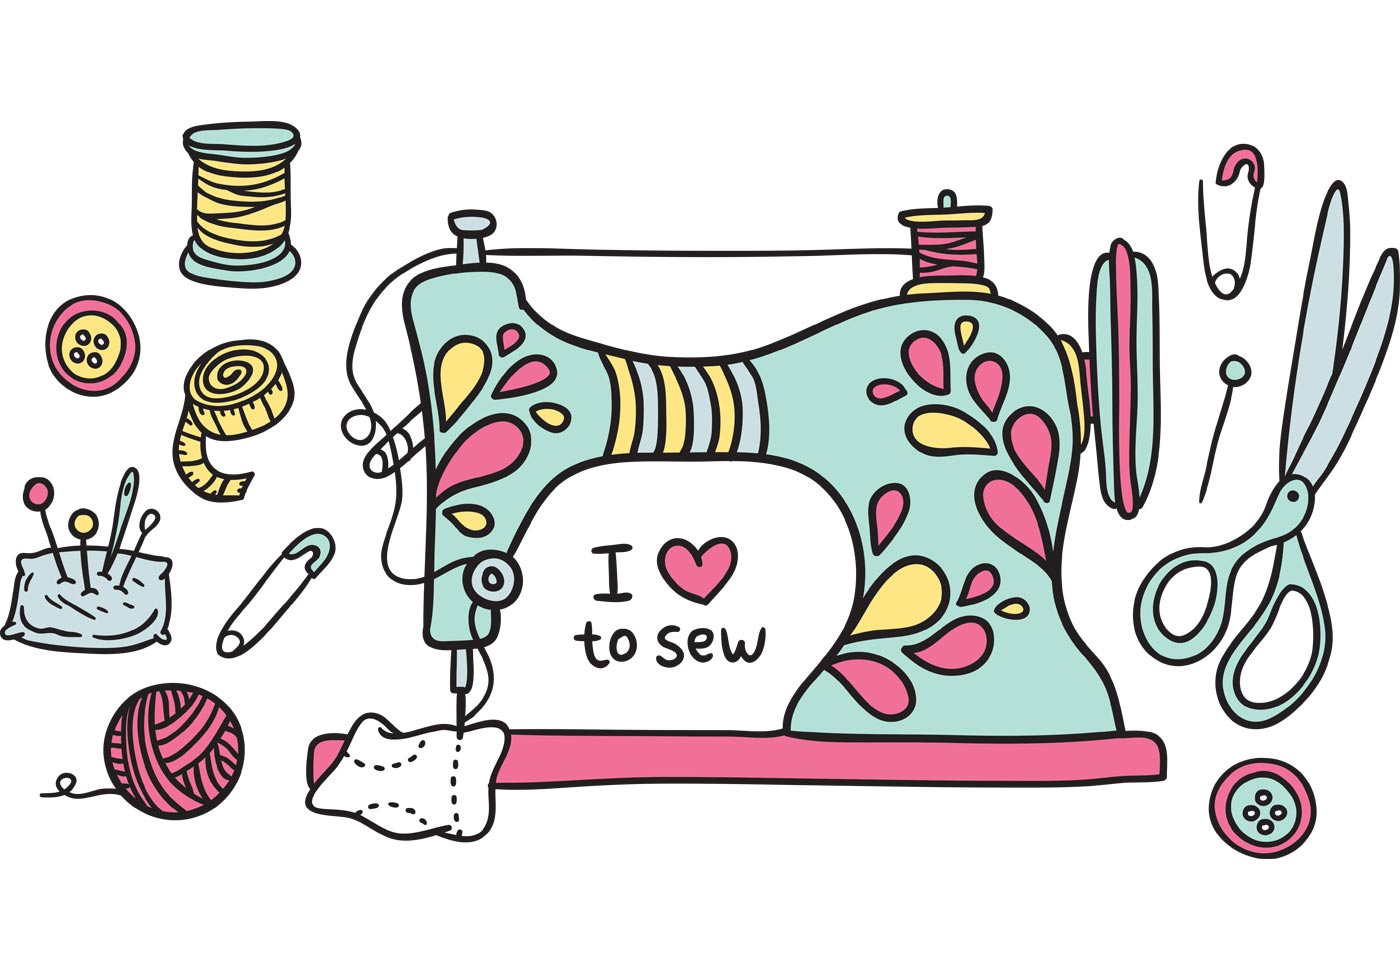 sewing machine sewing needle free vector art free downloads clip art image  40416